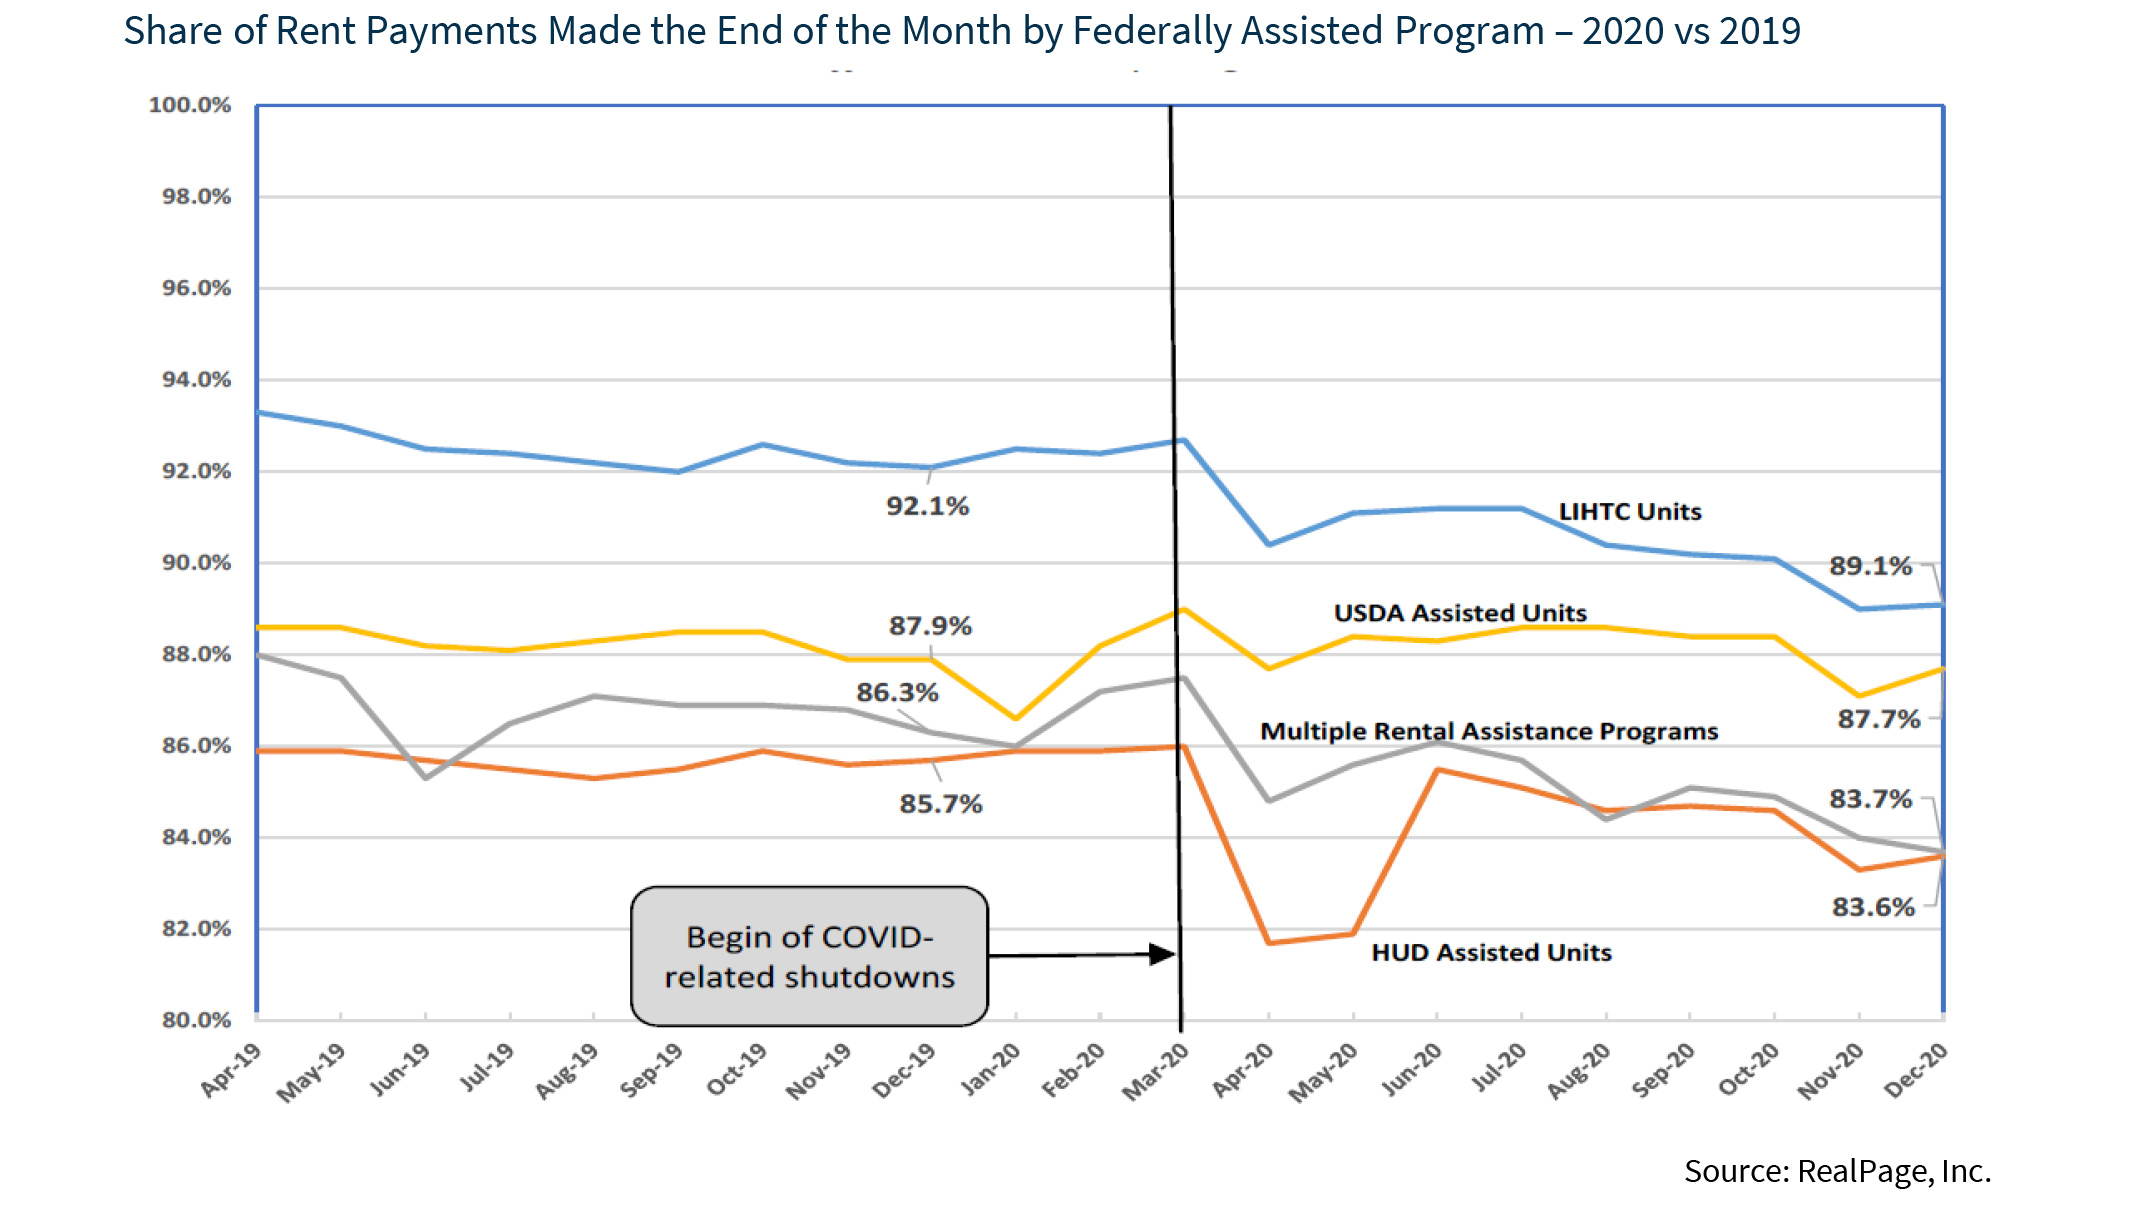 Share of Rent Payments Made the End of the Month by Federally Assisted Program – 2020 vs 2019